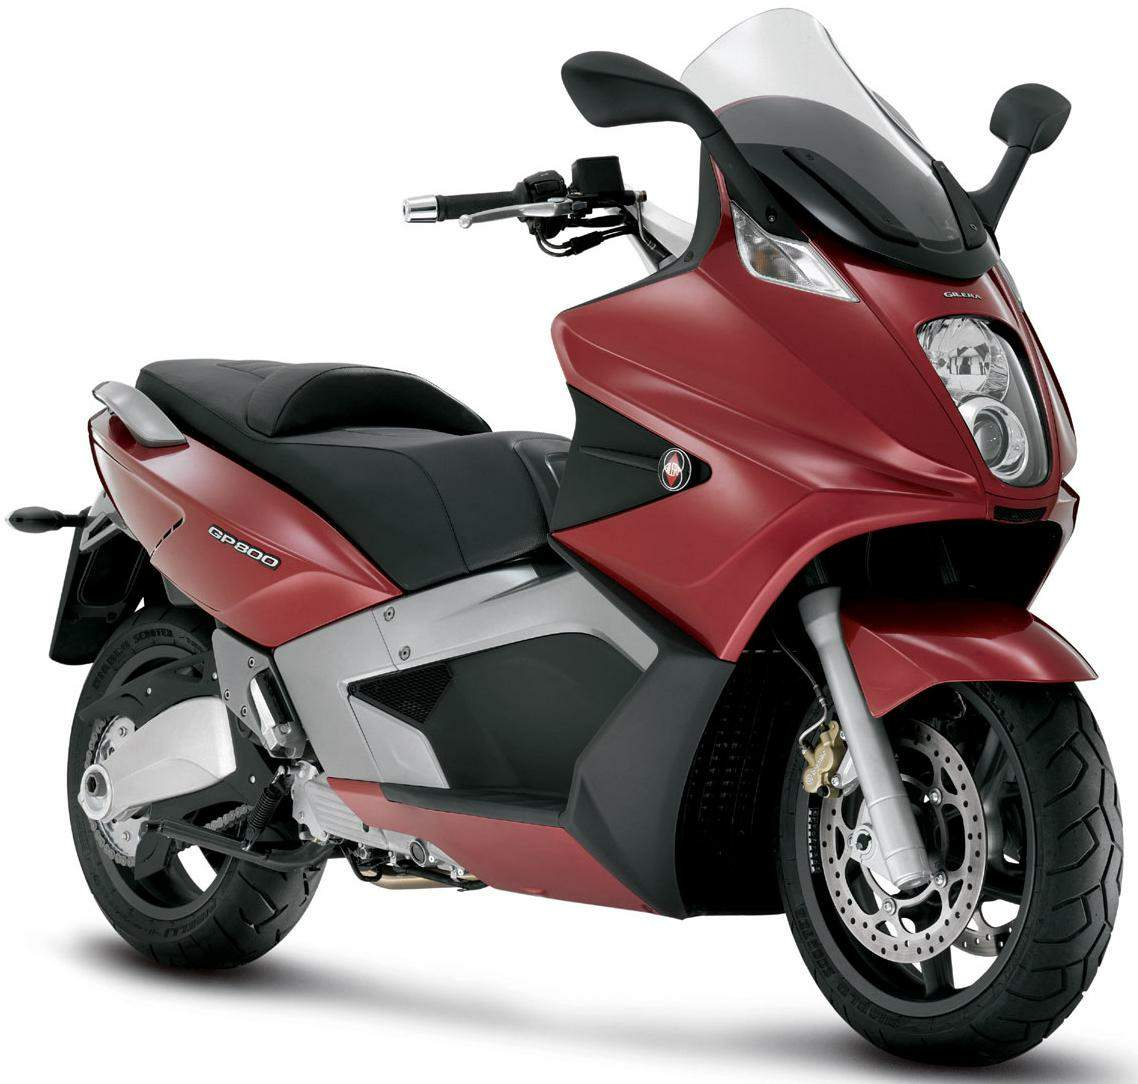 gilera gp 800 specs 2006 2007 autoevolution. Black Bedroom Furniture Sets. Home Design Ideas